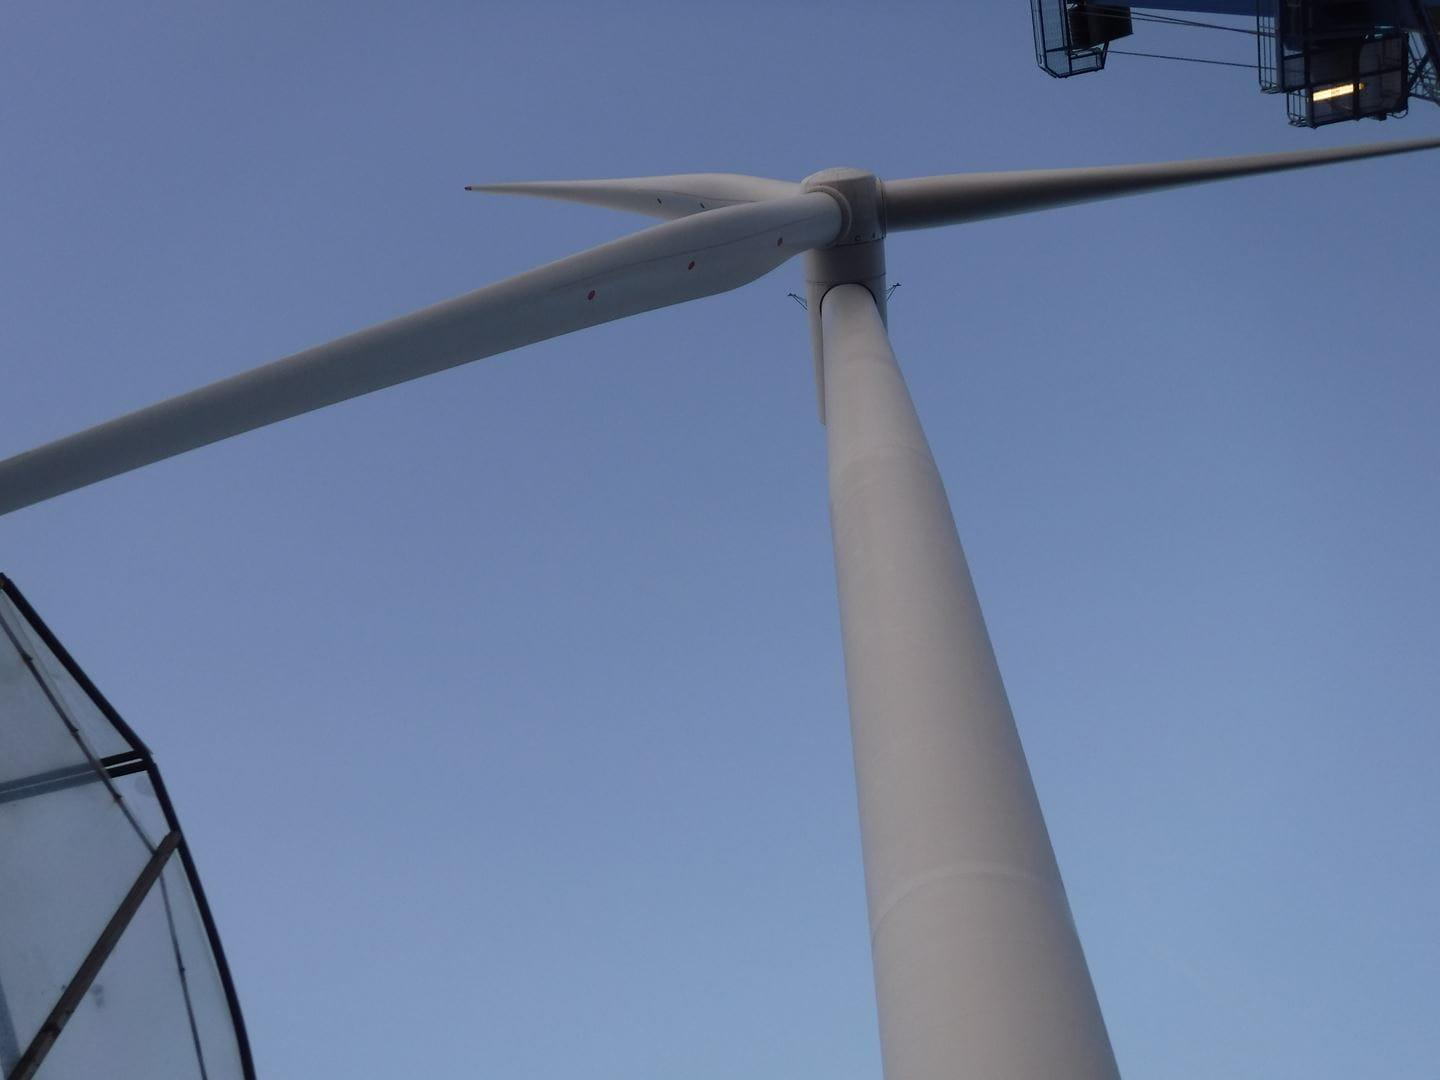 Ørsted installs 1000th turbine in UK waters